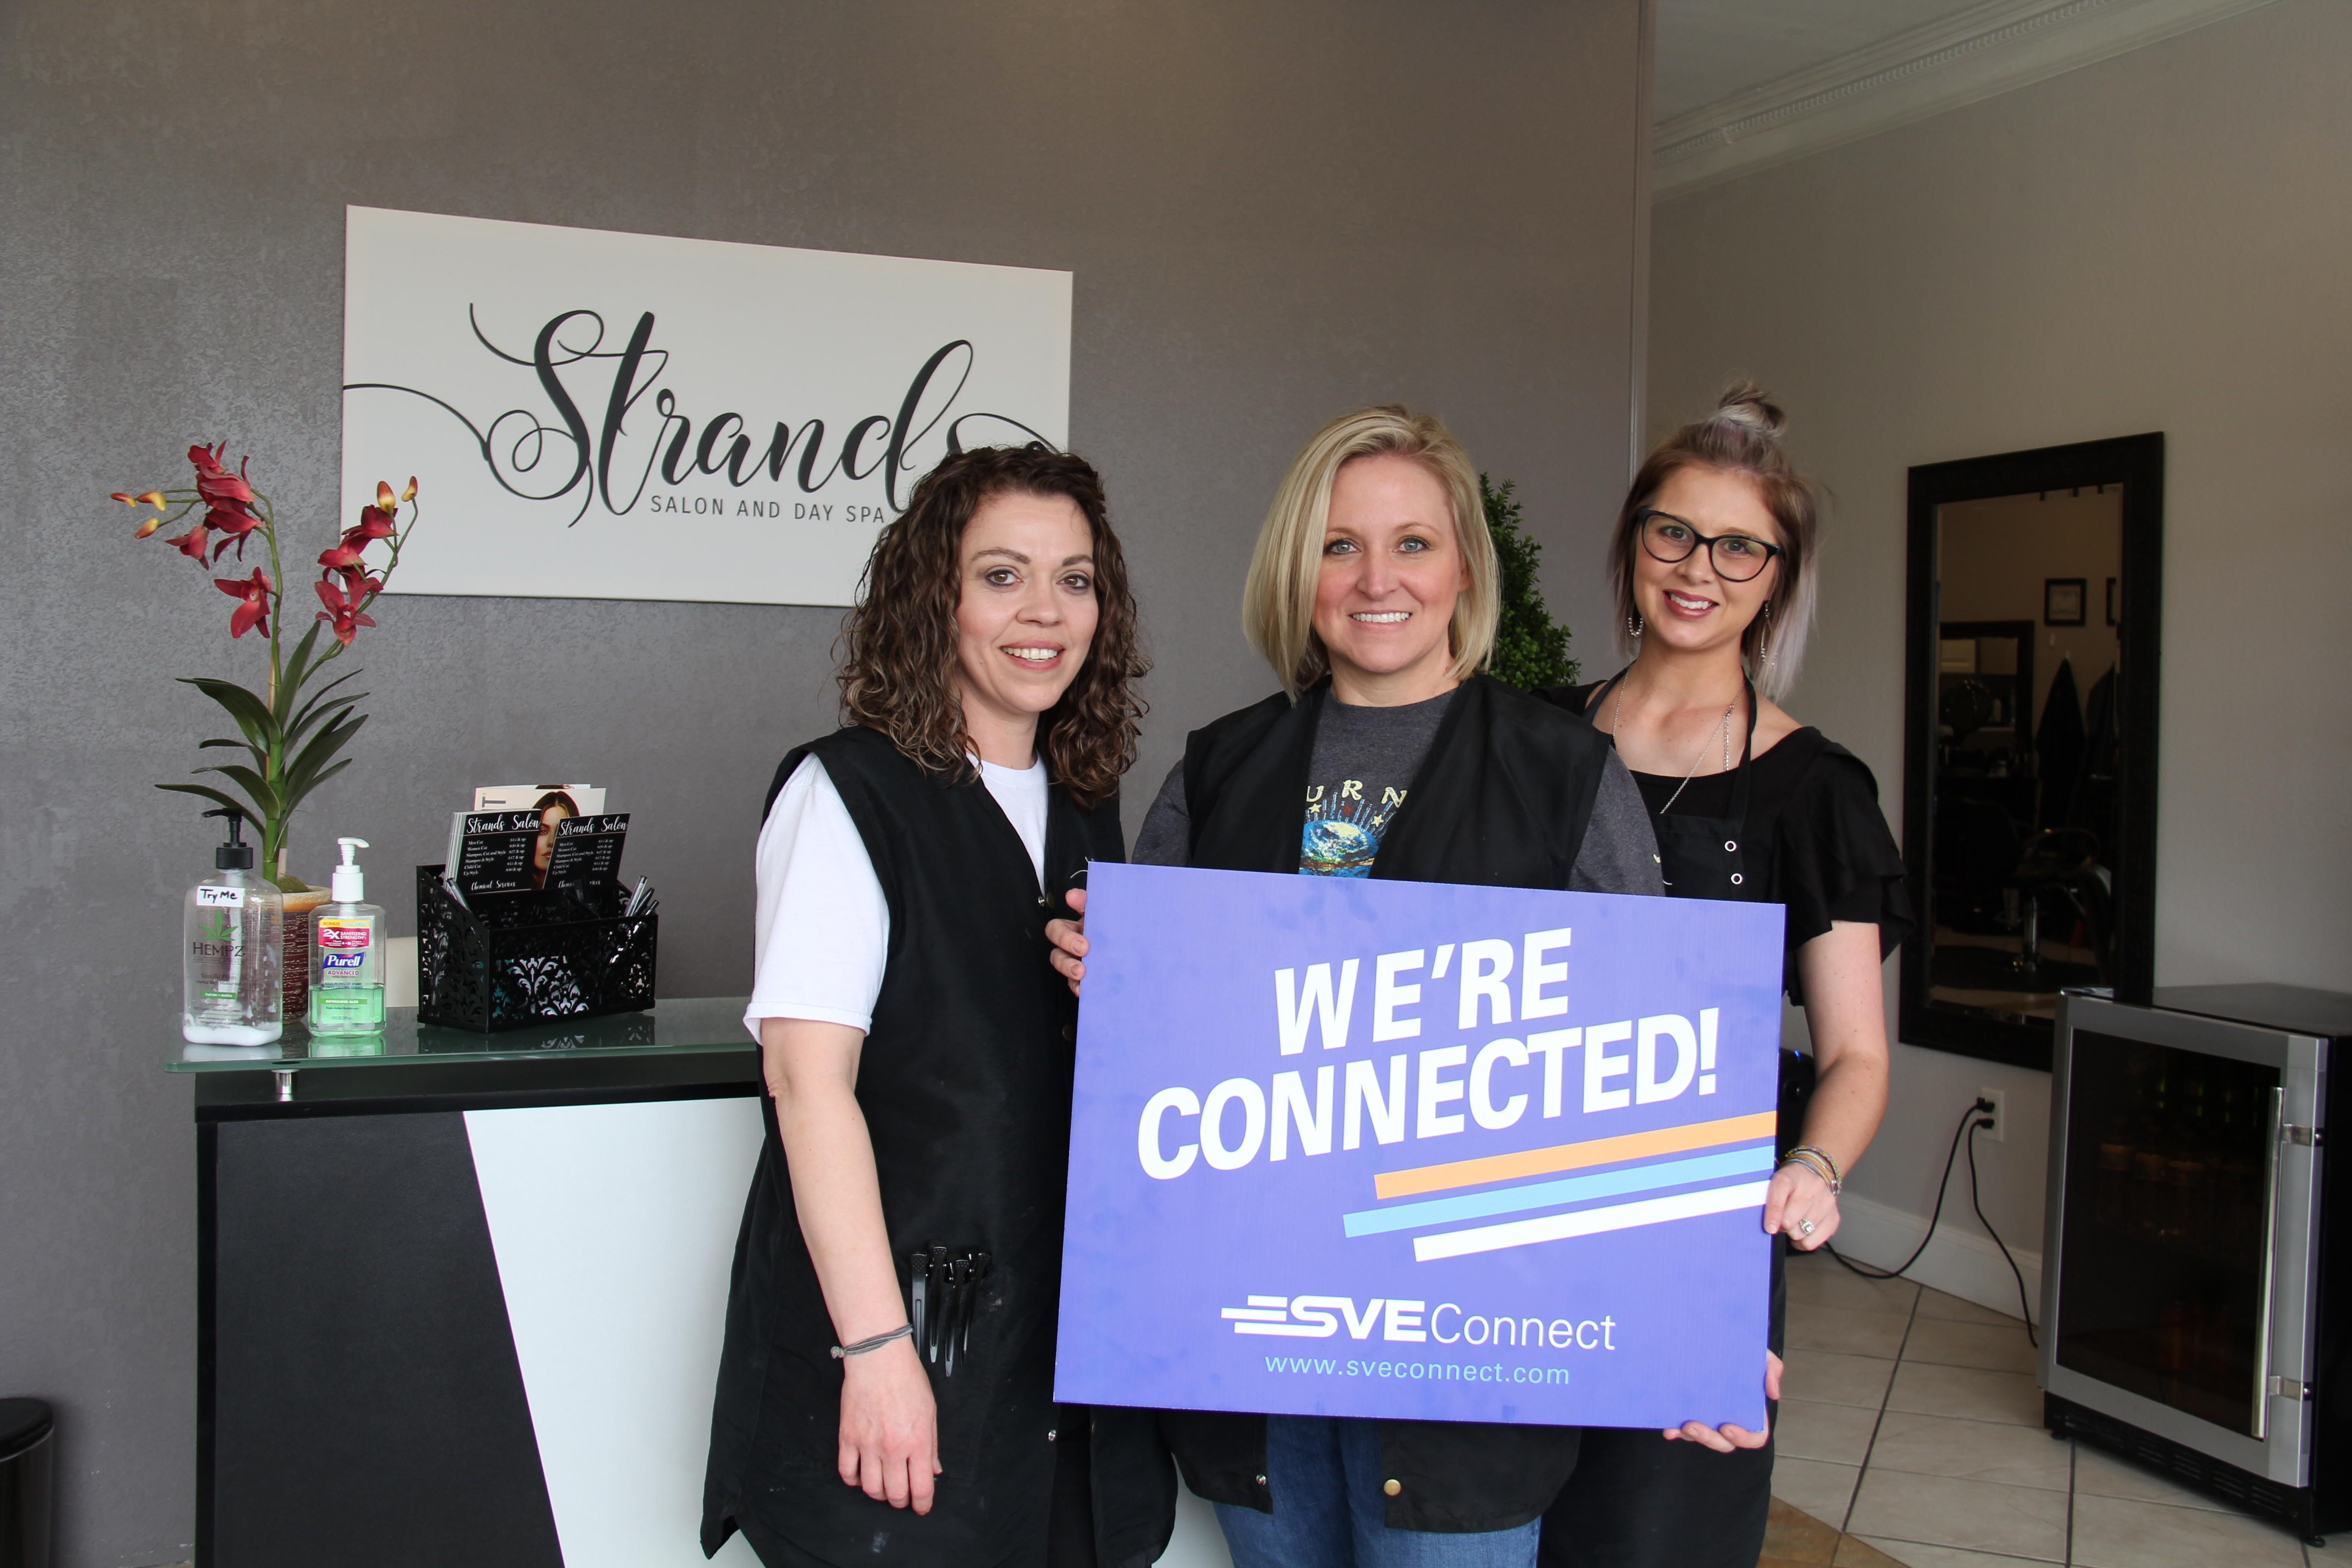 Strands Salon in Jasper is Connected